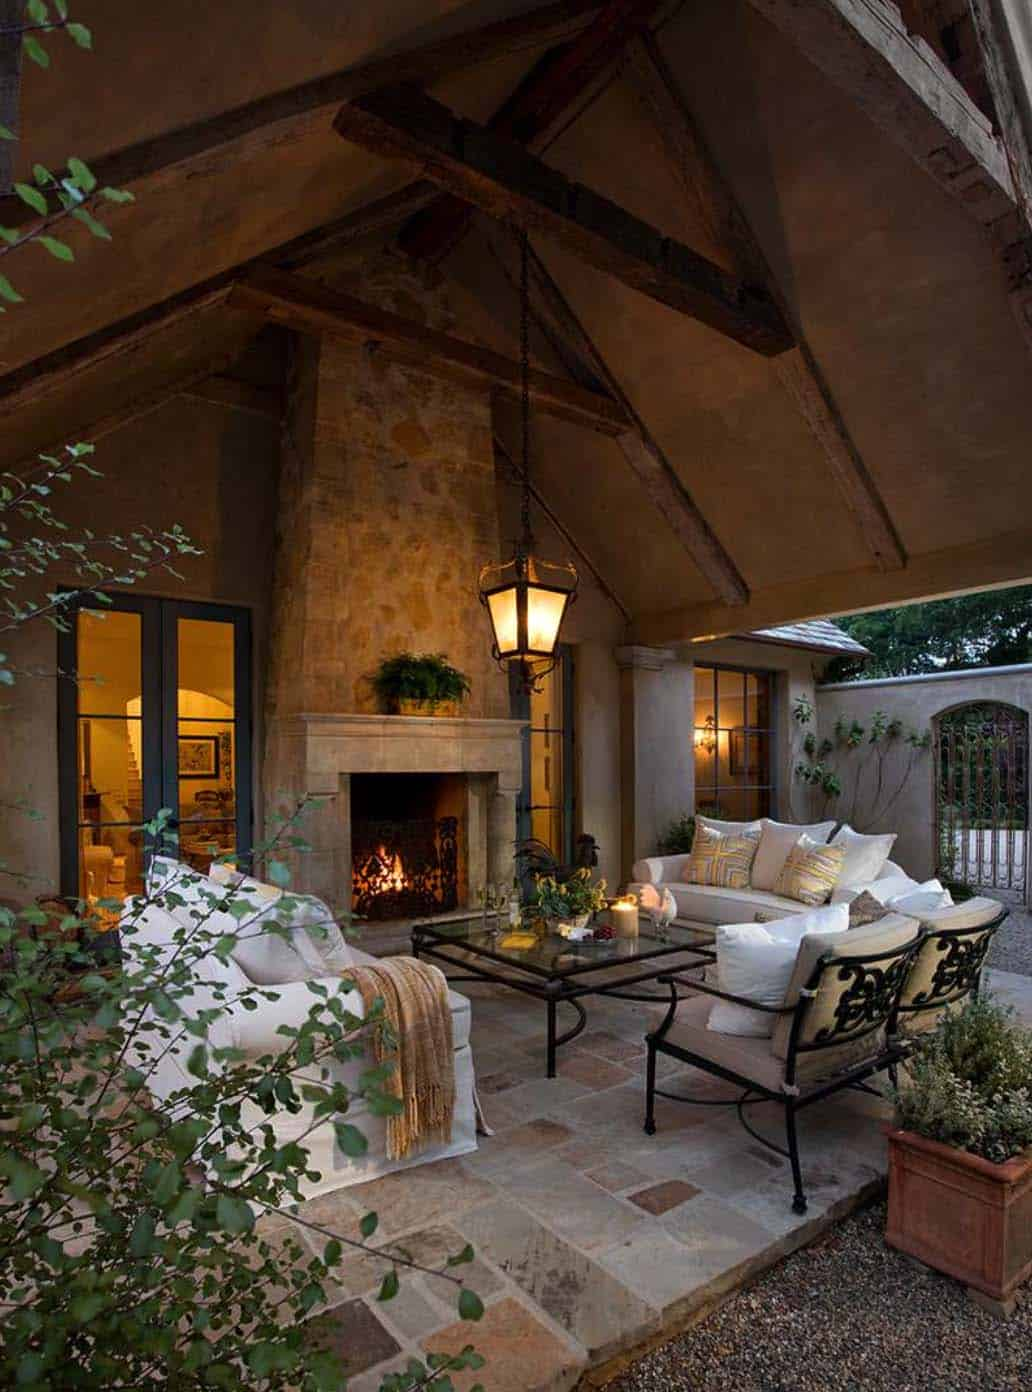 44 Traditional outdoor patio designs to capture your ... on Patios Designs  id=49729